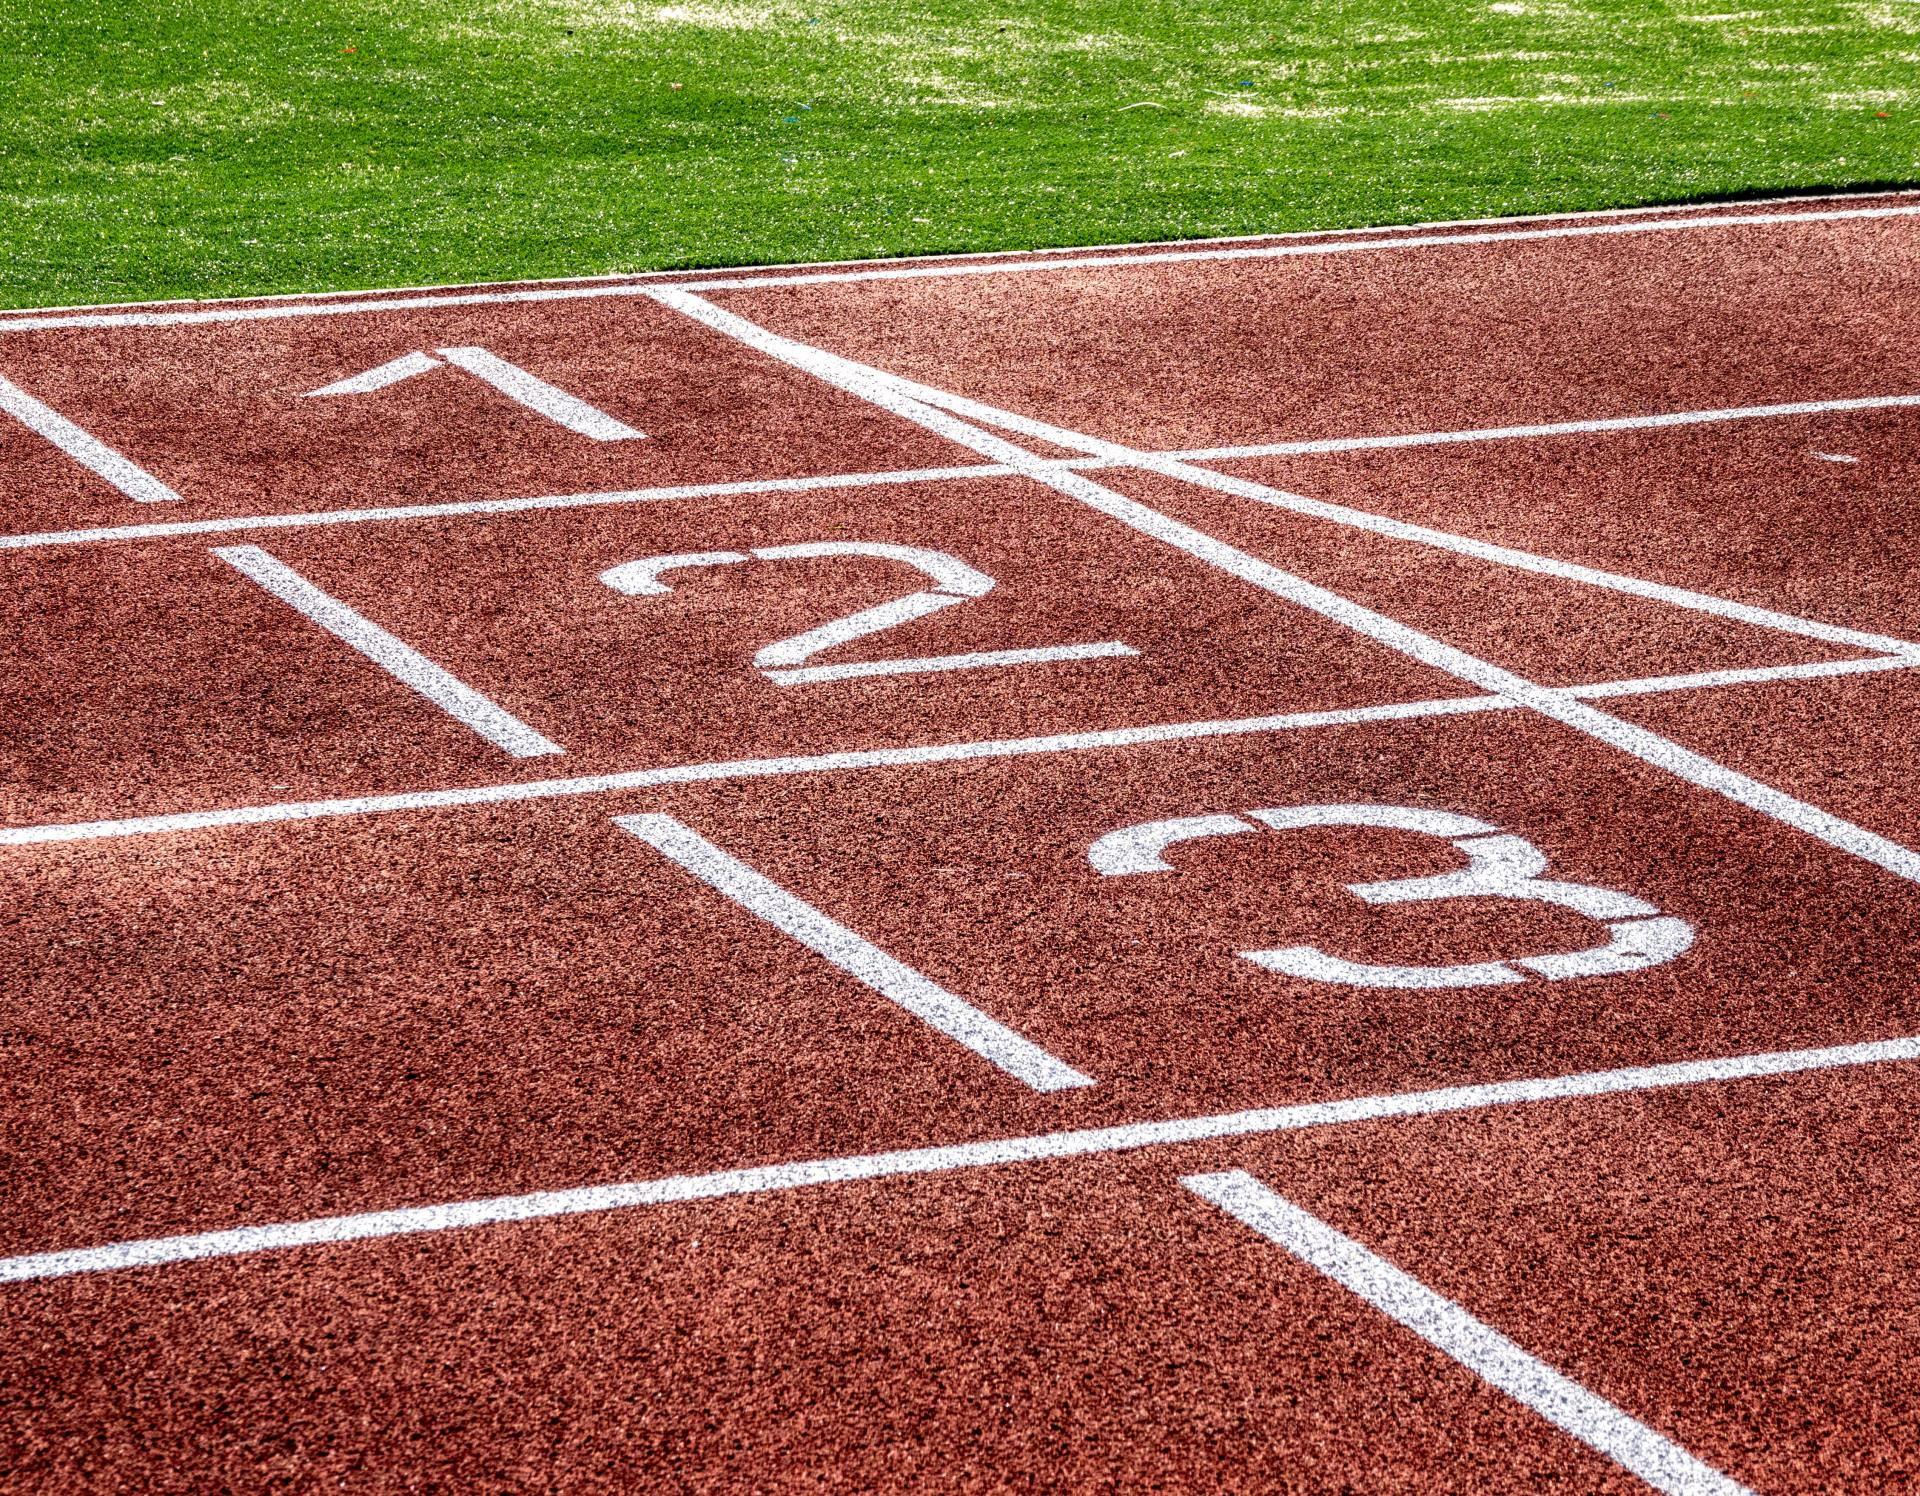 achievement, athlete, competition, determination, number, success, winning, effort, concentration, runner, runners, 1'st place